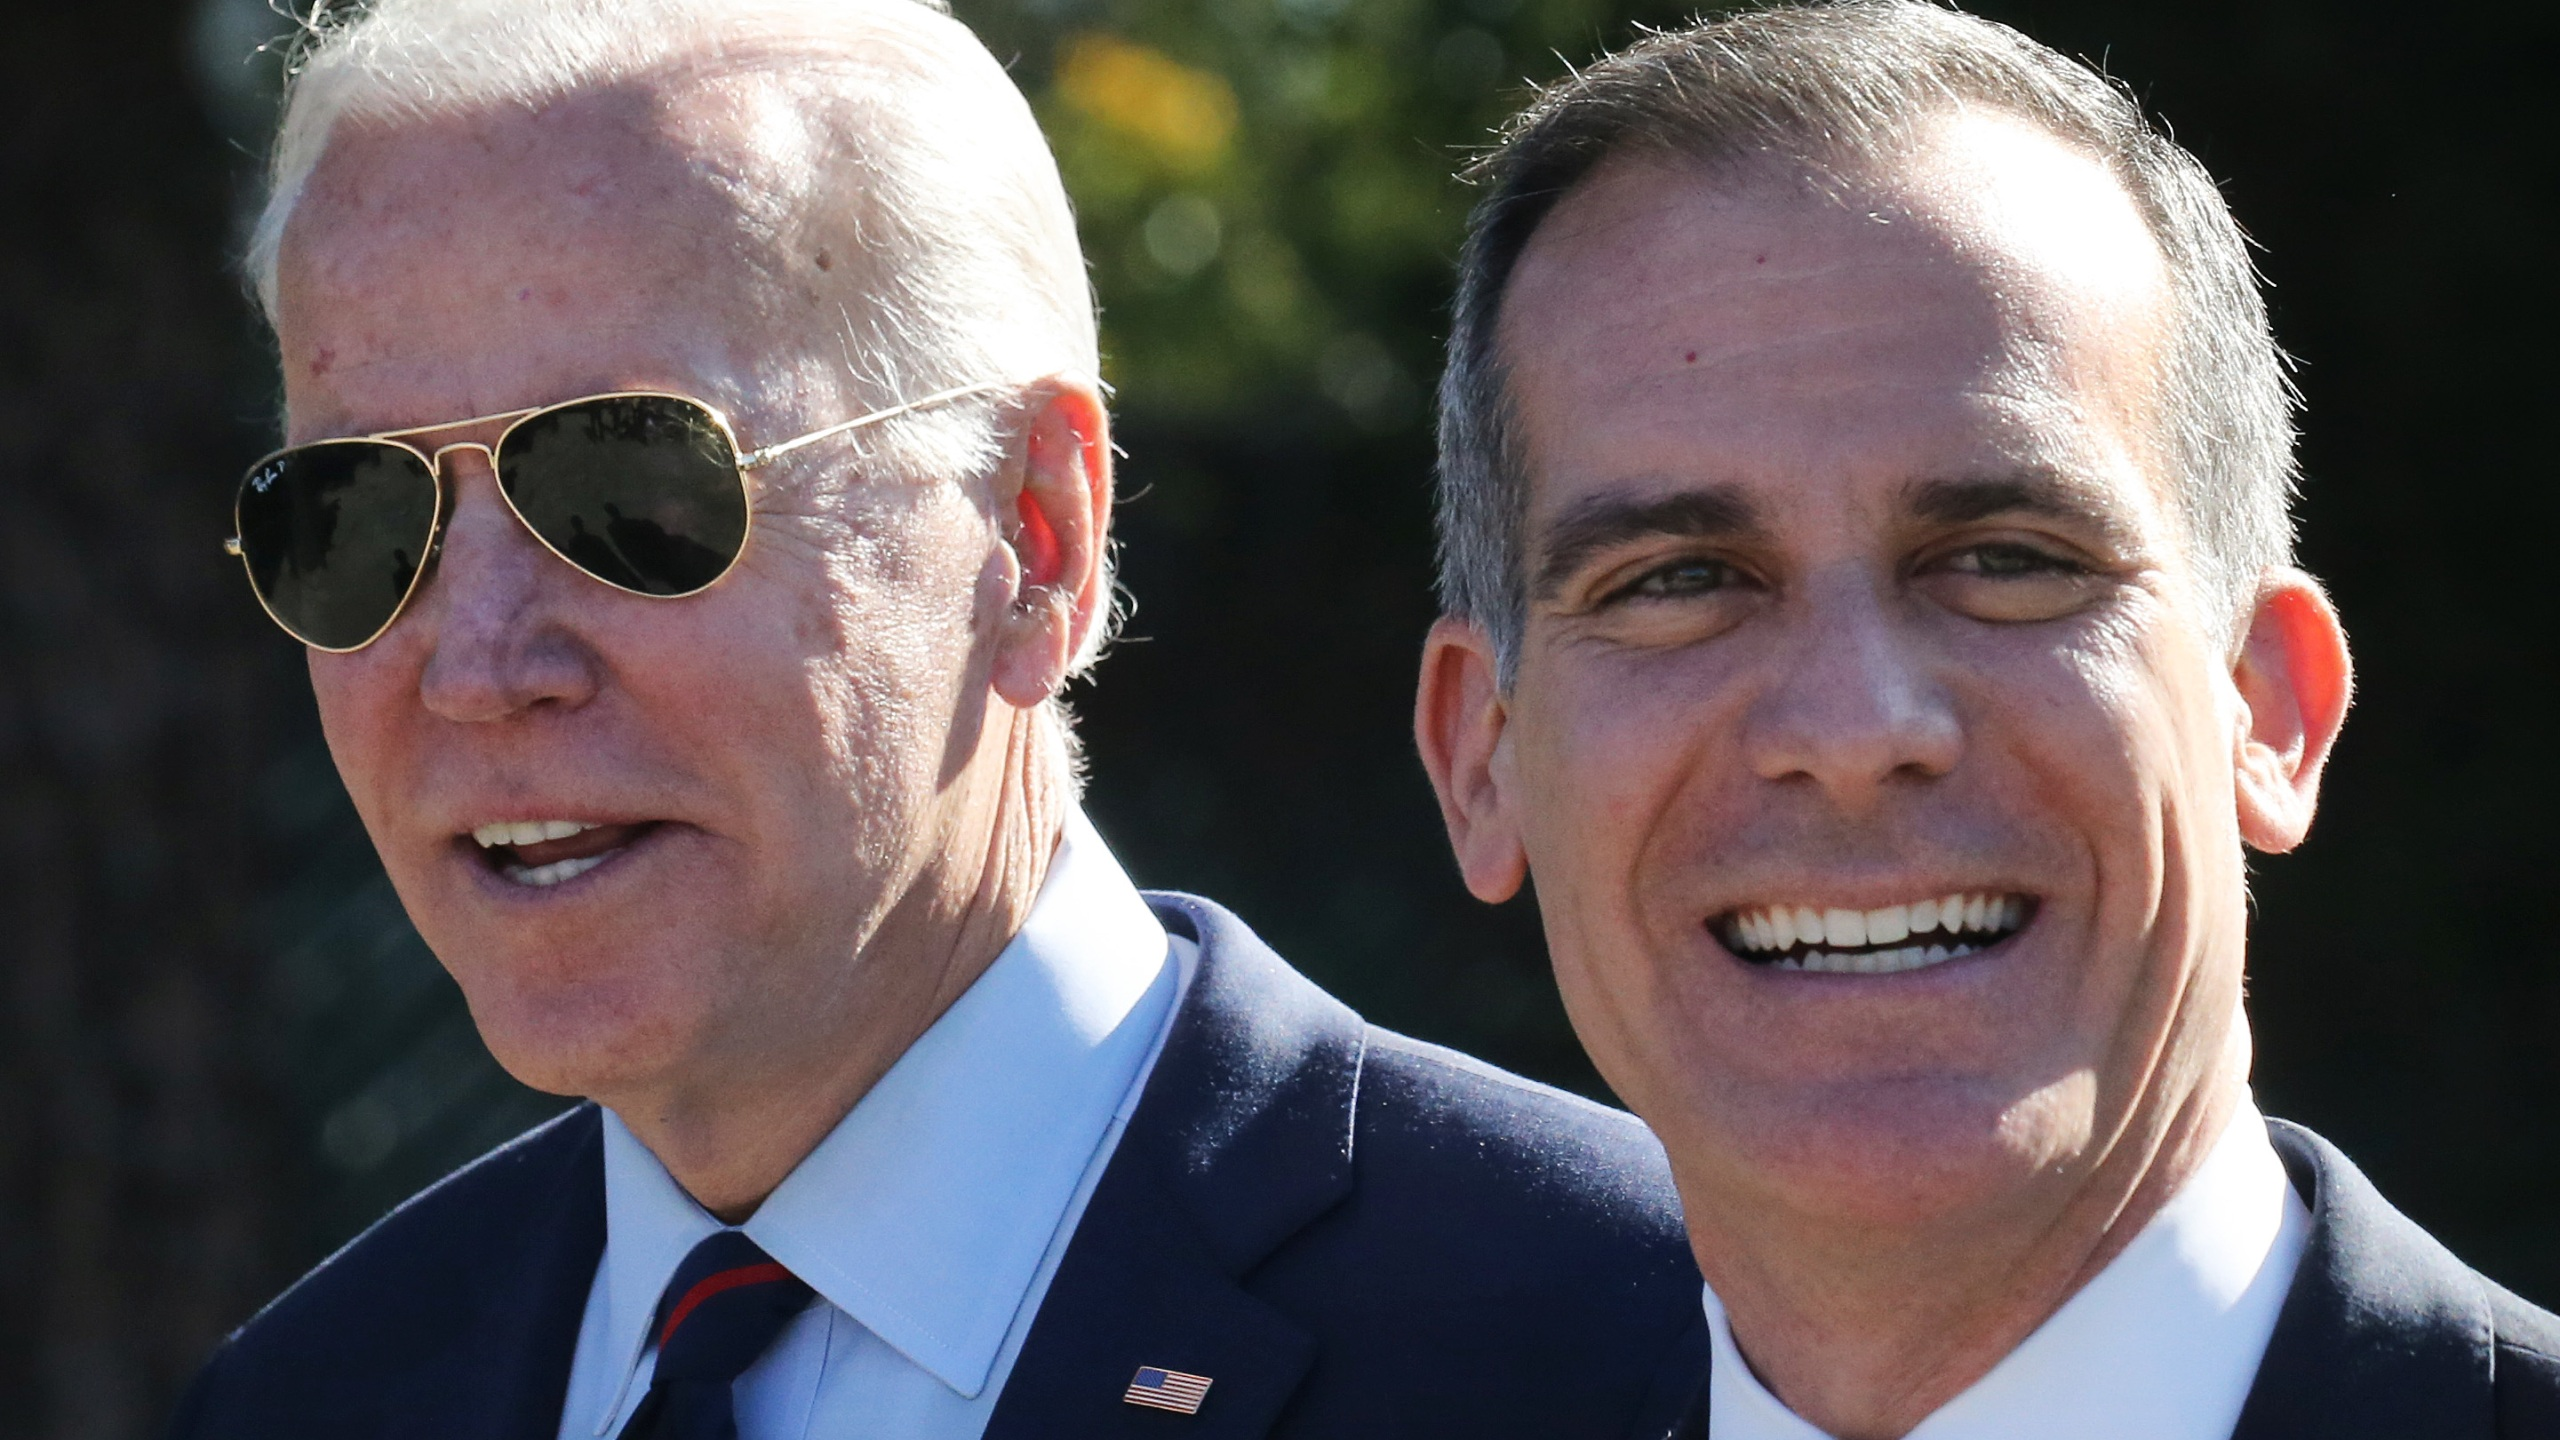 Then-Democratic presidential candidate and former U.S. Vice President Joe Biden (L) walks with Los Angeles Mayor Eric Garcetti at a campaign event at United Firefighters of Los Angeles City on Jan. 10, 2020. (Mario Tama/Getty Images)